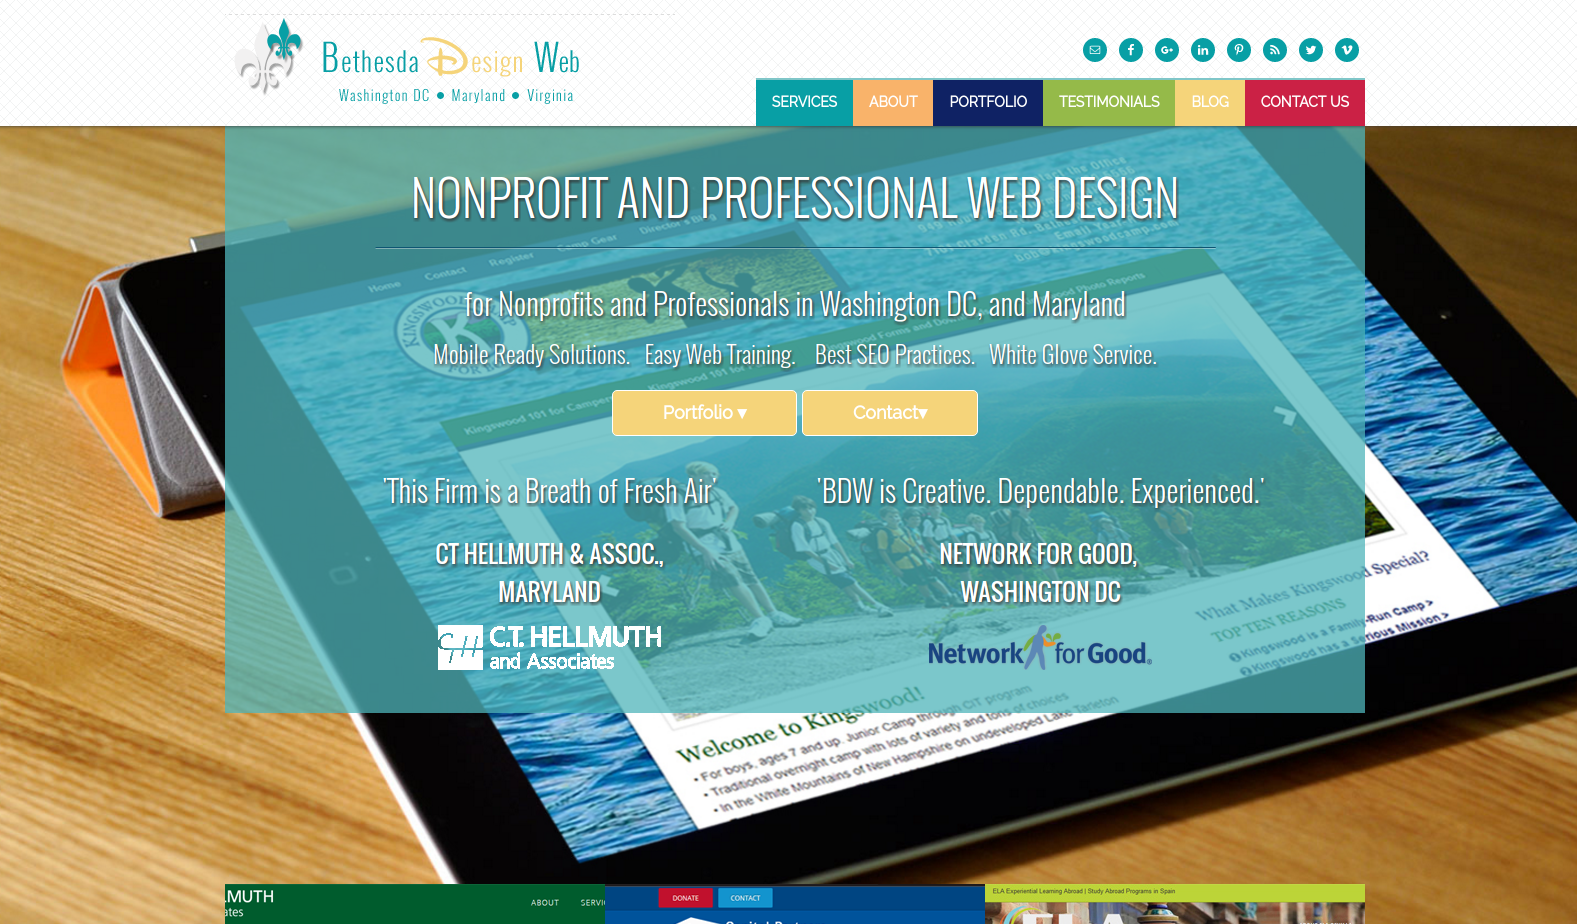 Bethesda Design Web offers web design and copywriting services for nonprofits and businesses in the Washington D.C. area.